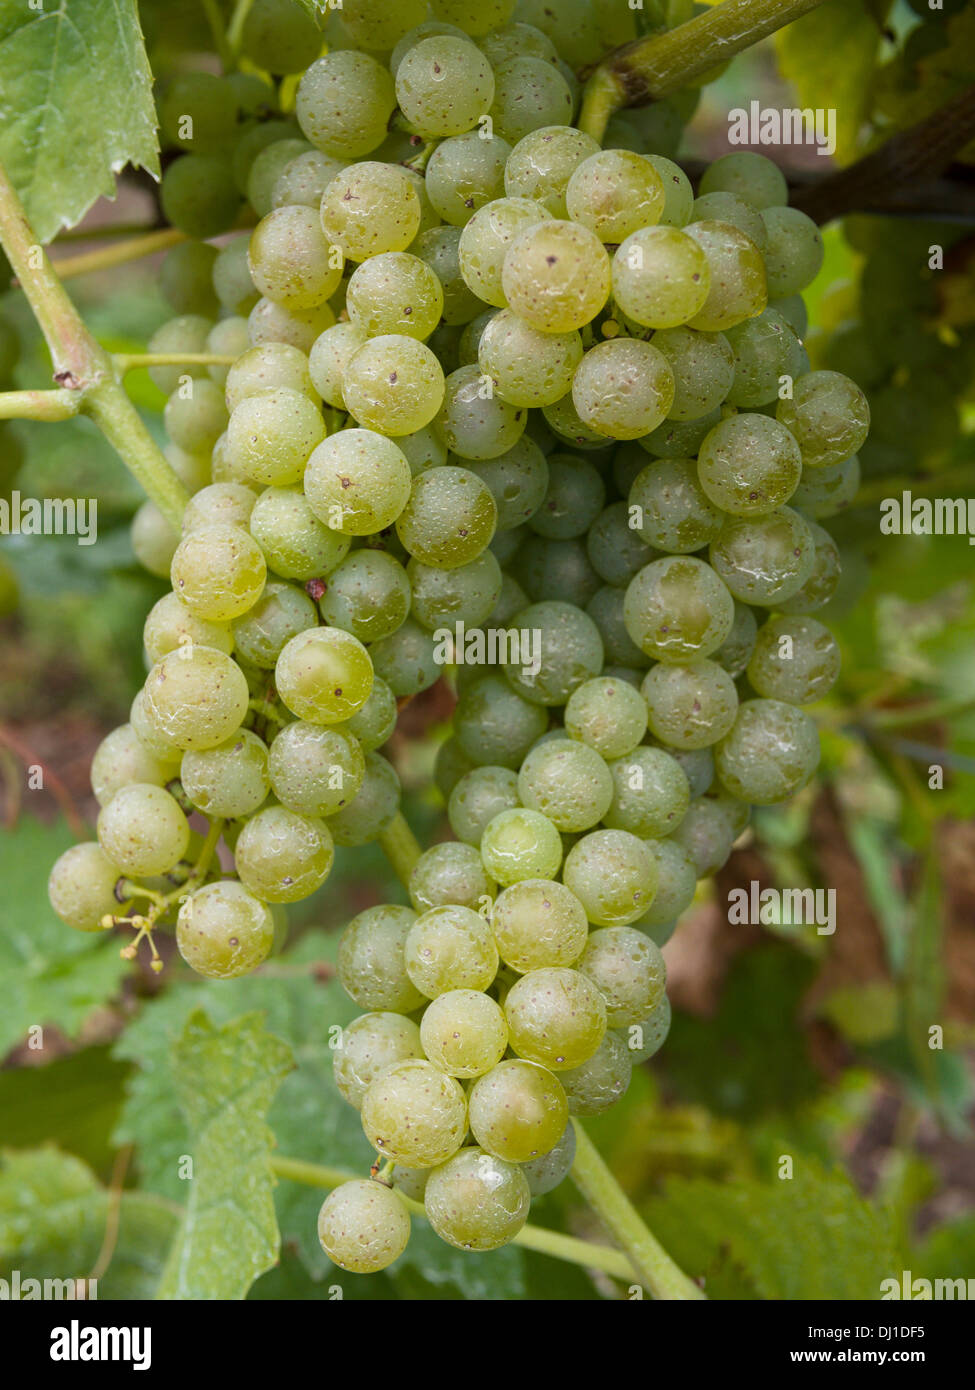 A Double bunch of Vidal Grapes on the vine. An abundance of plump green grapes hang from a grape vine. Stock Photo